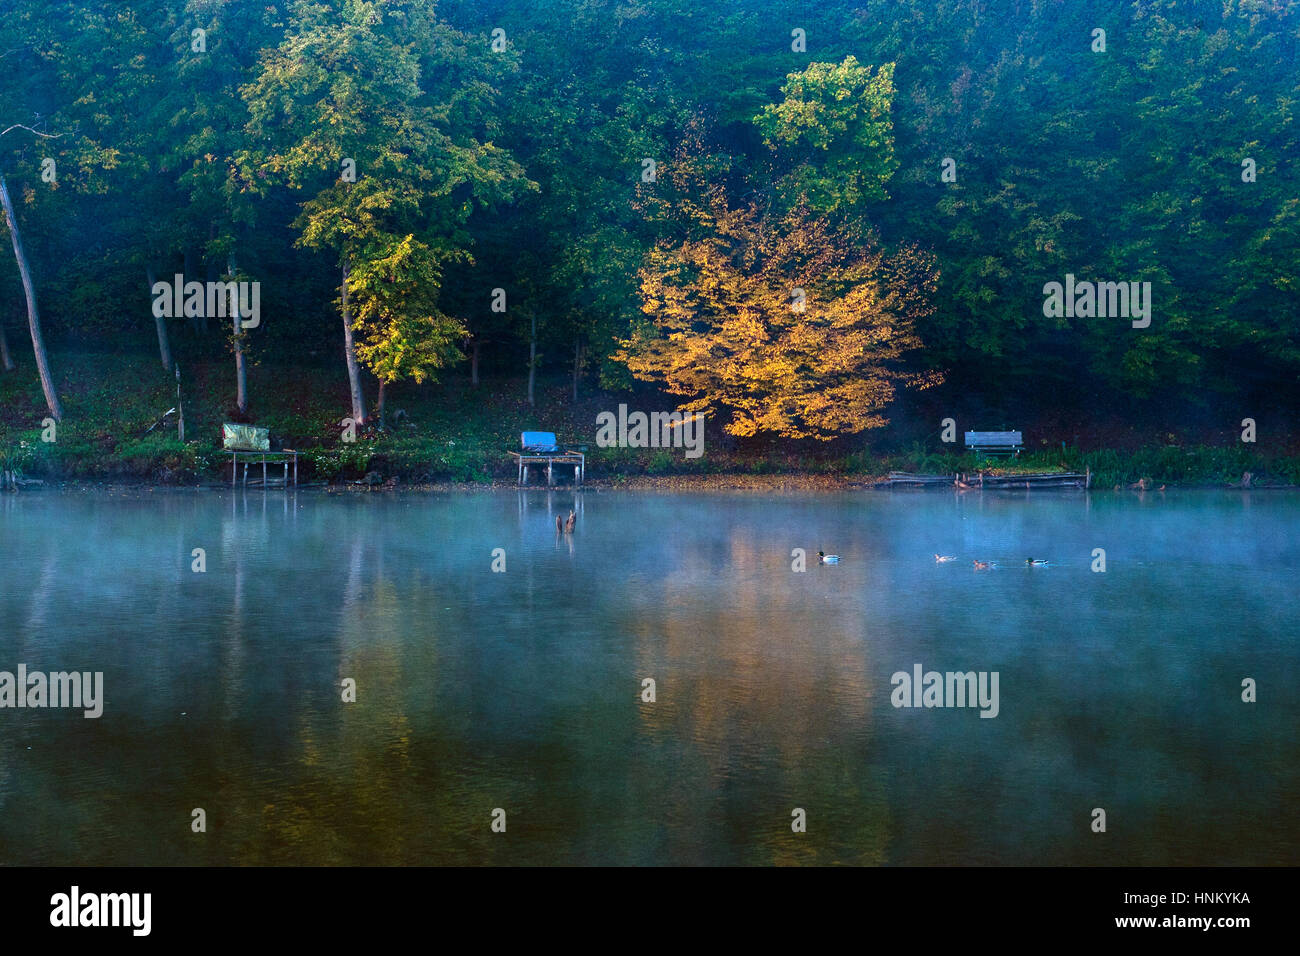 Autumn scene with lake and forest in sunset - Stock Image